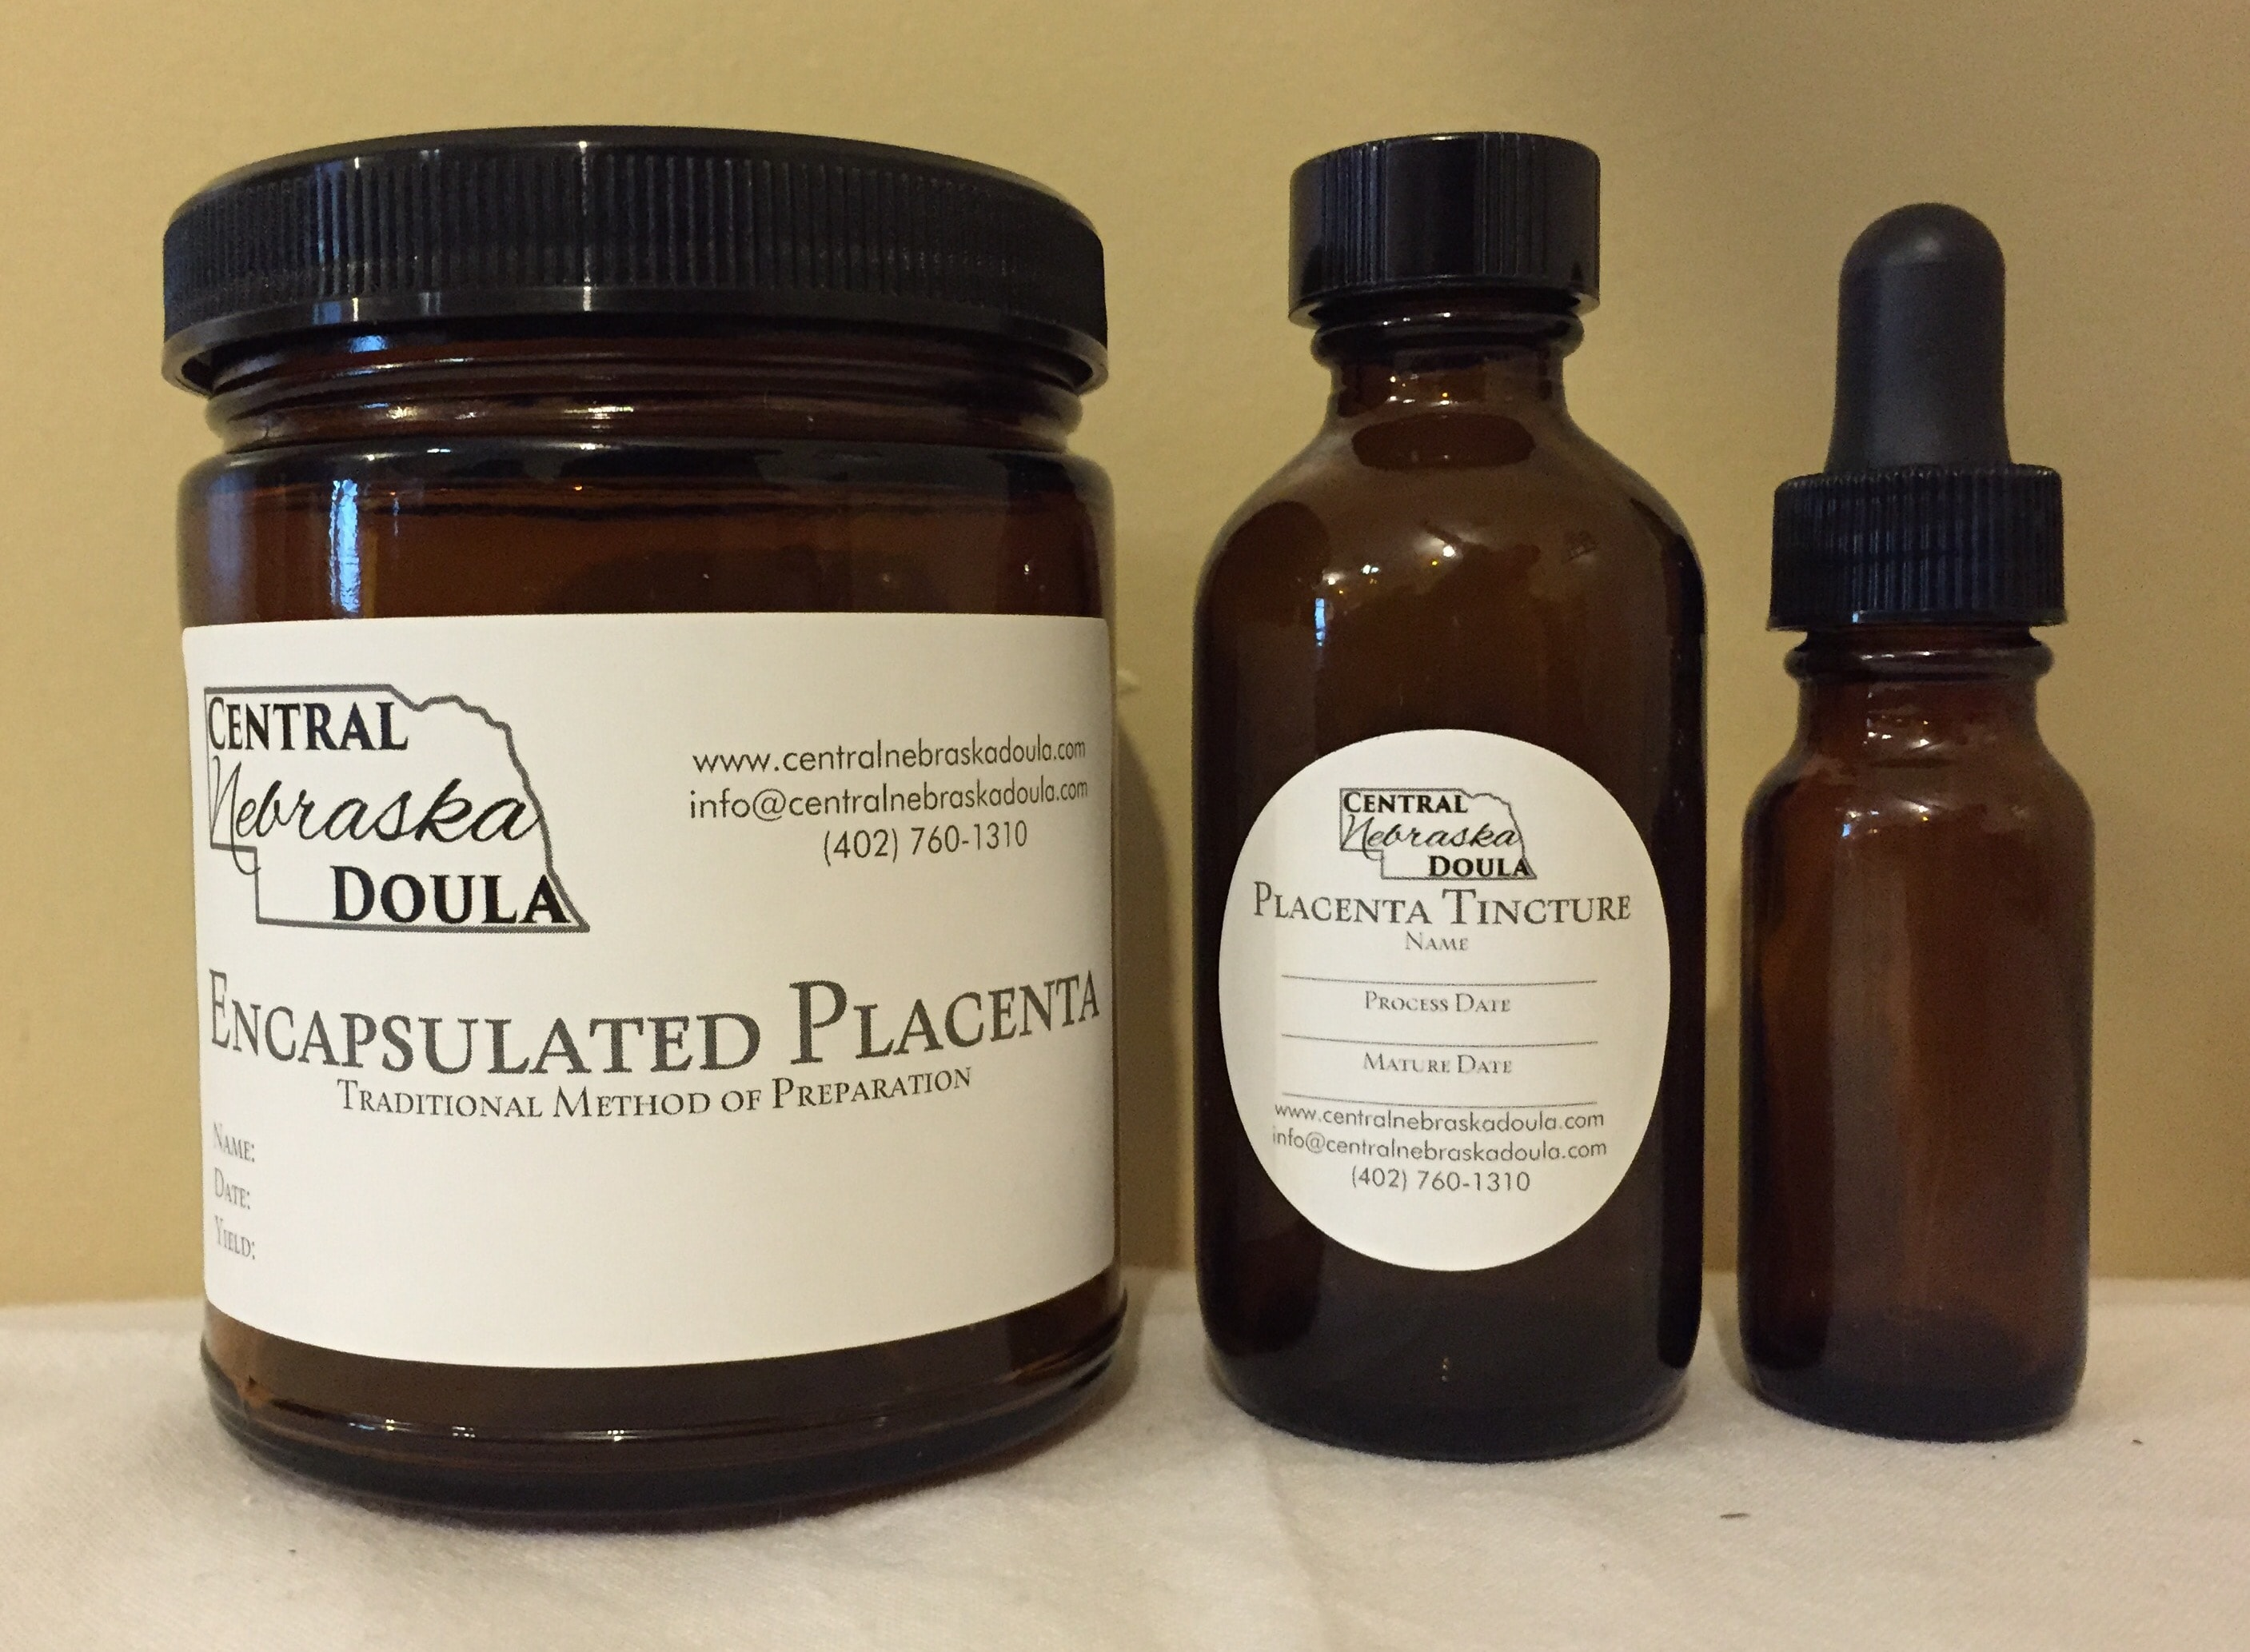 Central Nebraska Doula Placenta Encapsulation